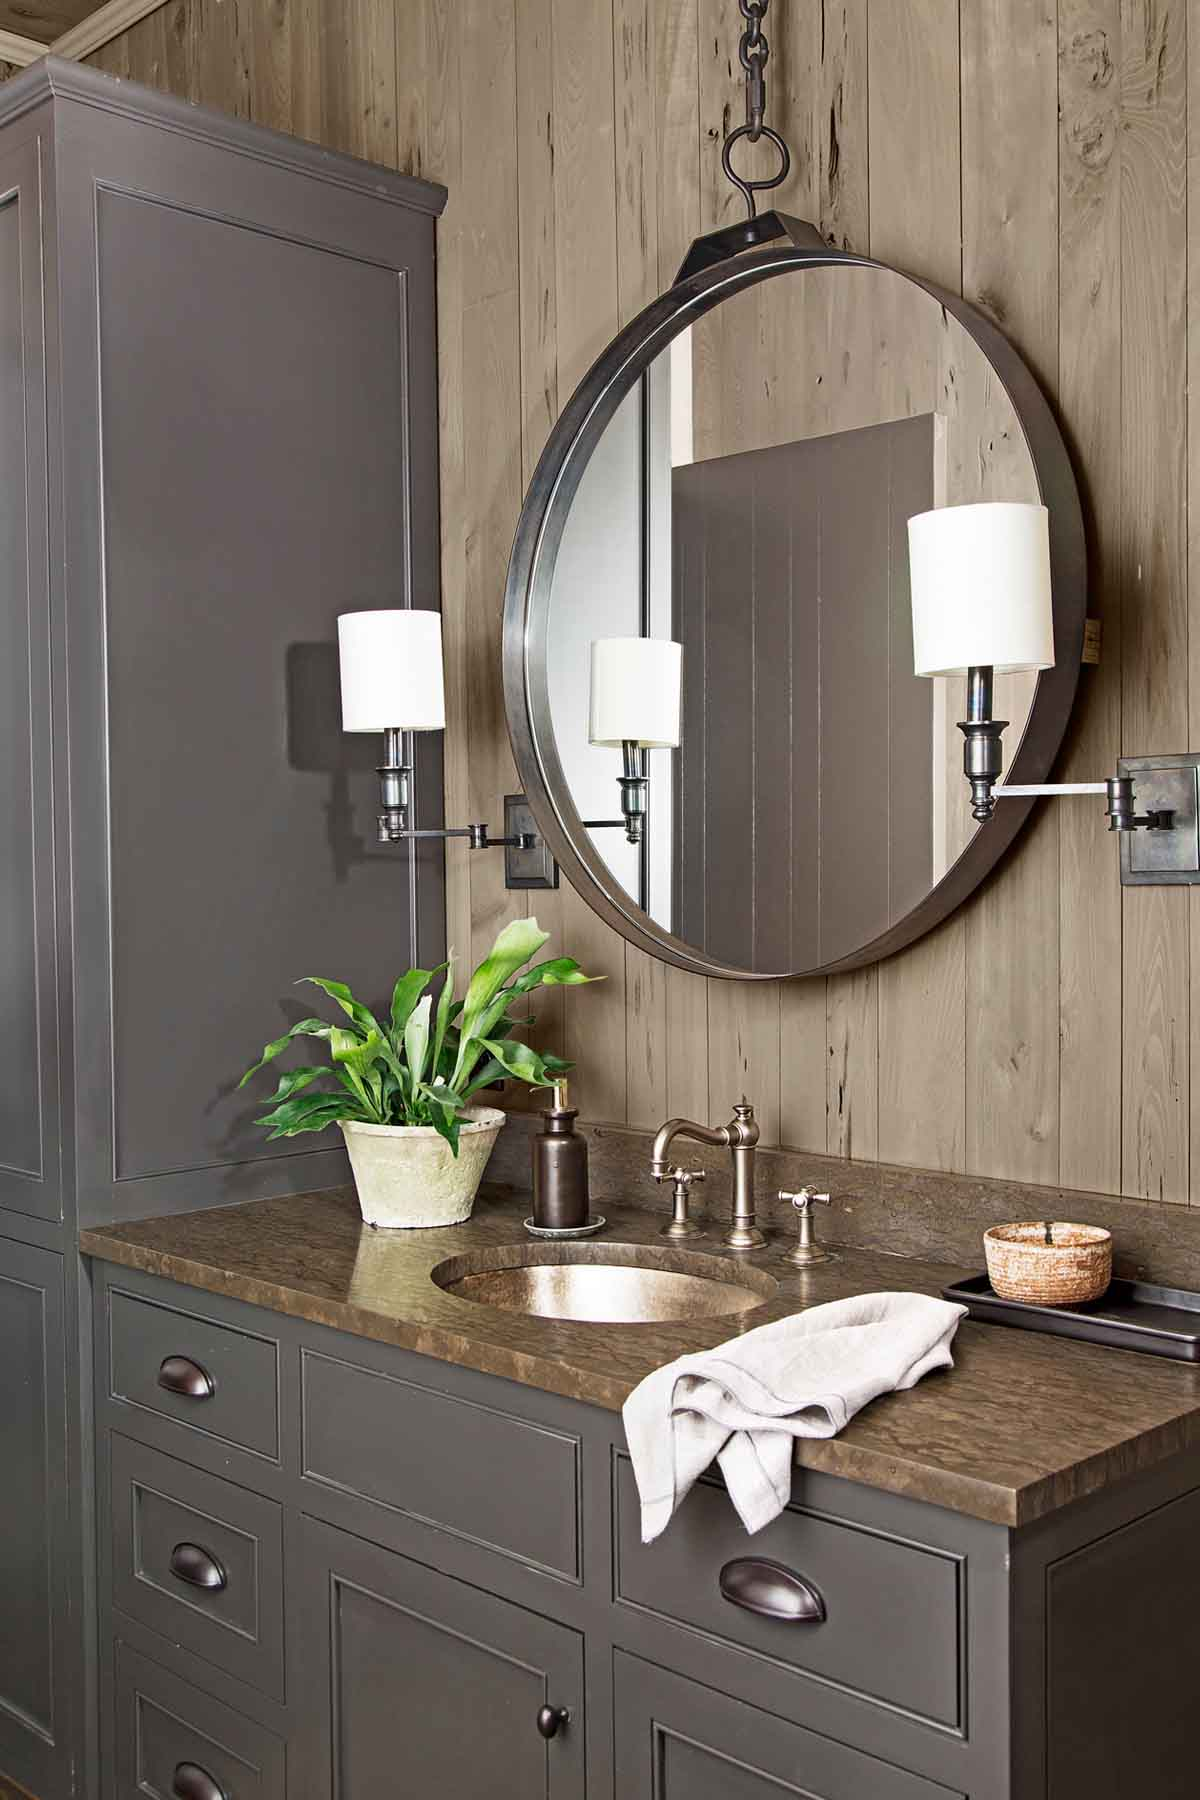 Rustic Bathroom Decor Ideas Rustic Modern Bathroom Designs